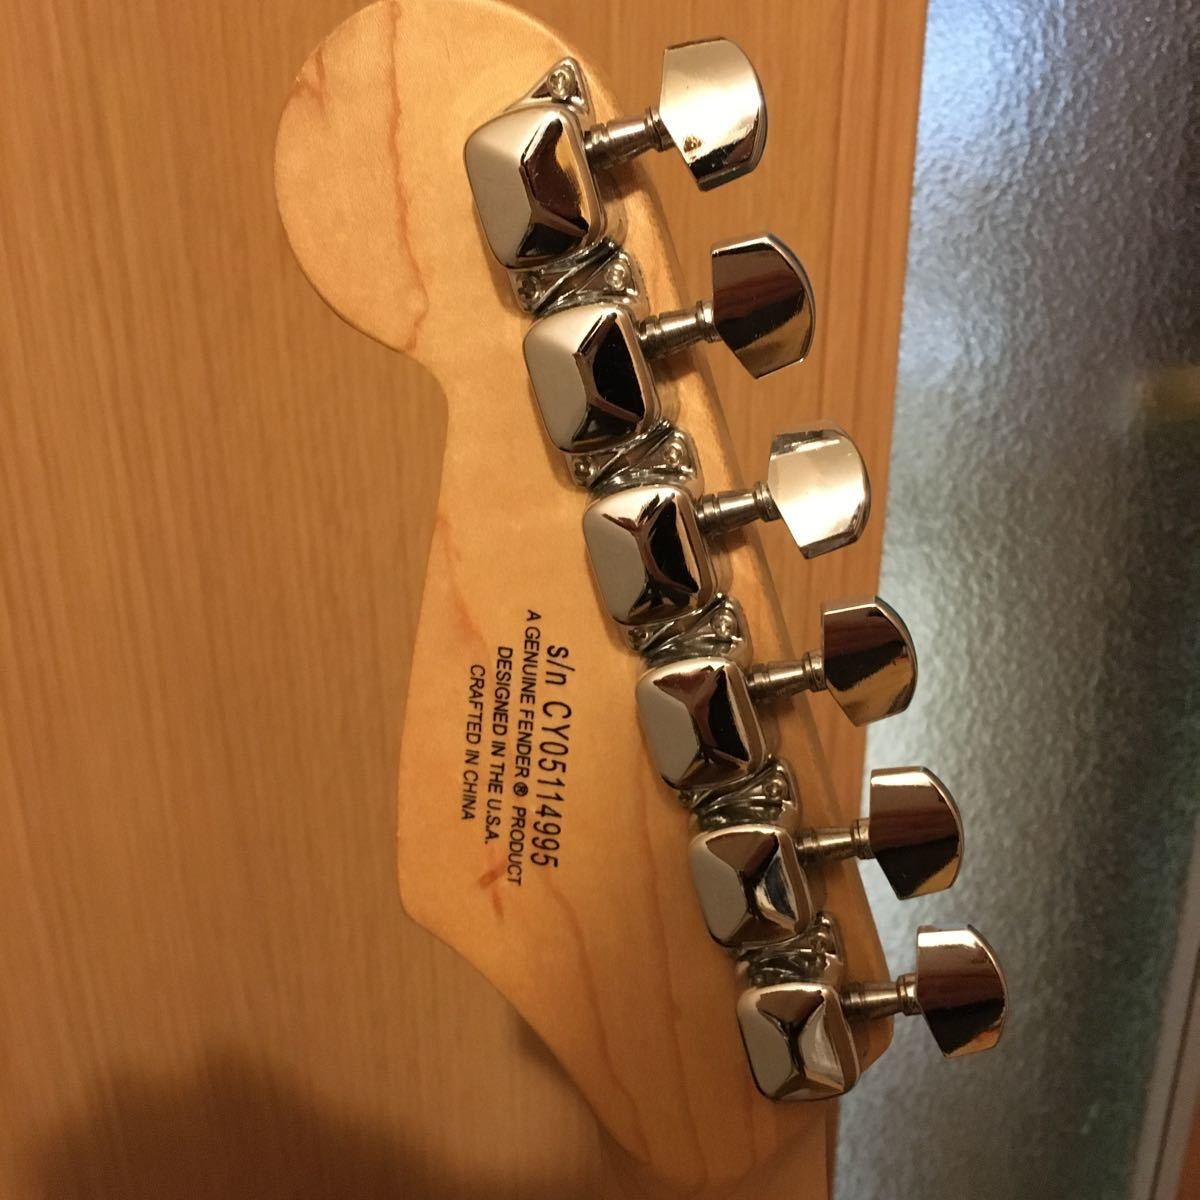 Squier by Fender ストラトキャスター エレキギター Bullet Strat with Tremolo, Rosewood Fingerboard, Black_画像4